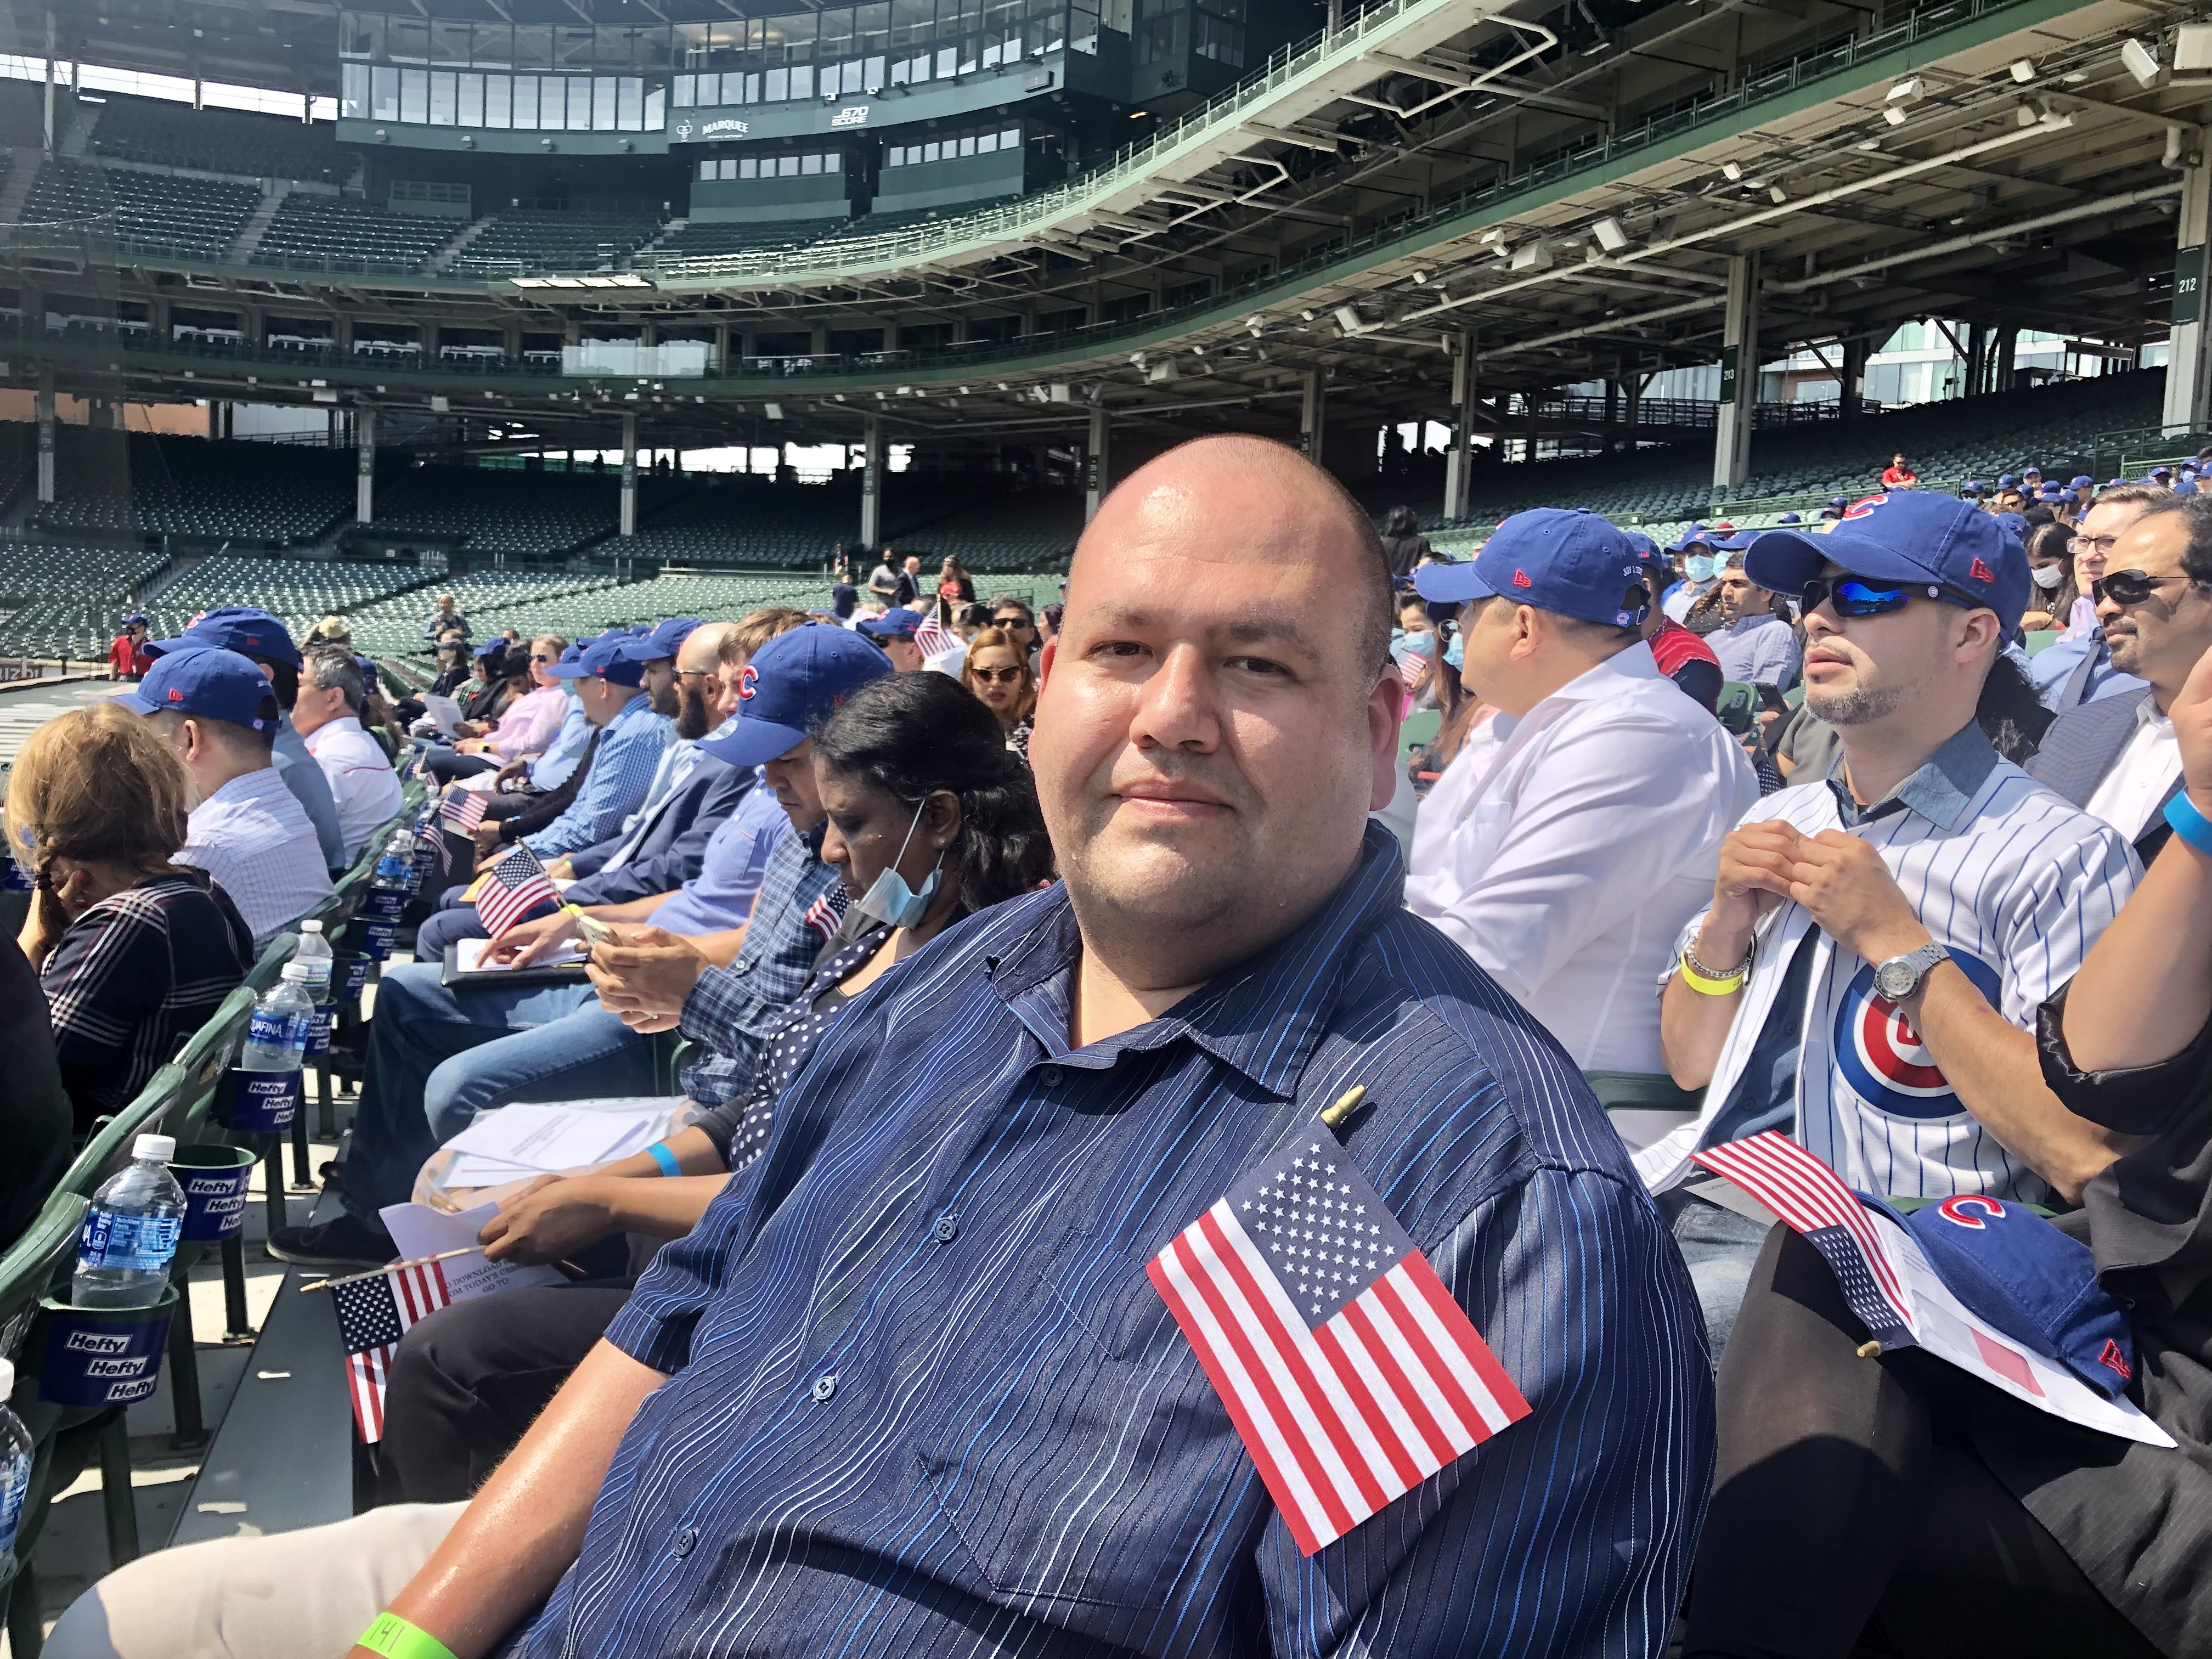 Hector Perez sits in the stands near the third base line at Wrigley Field Friday. He was one of 172 people who became new citizens at a special naturalization ceremony. Perez, 38, is eager to see visit relatives in Mexico and not worry about being let back in the United States.